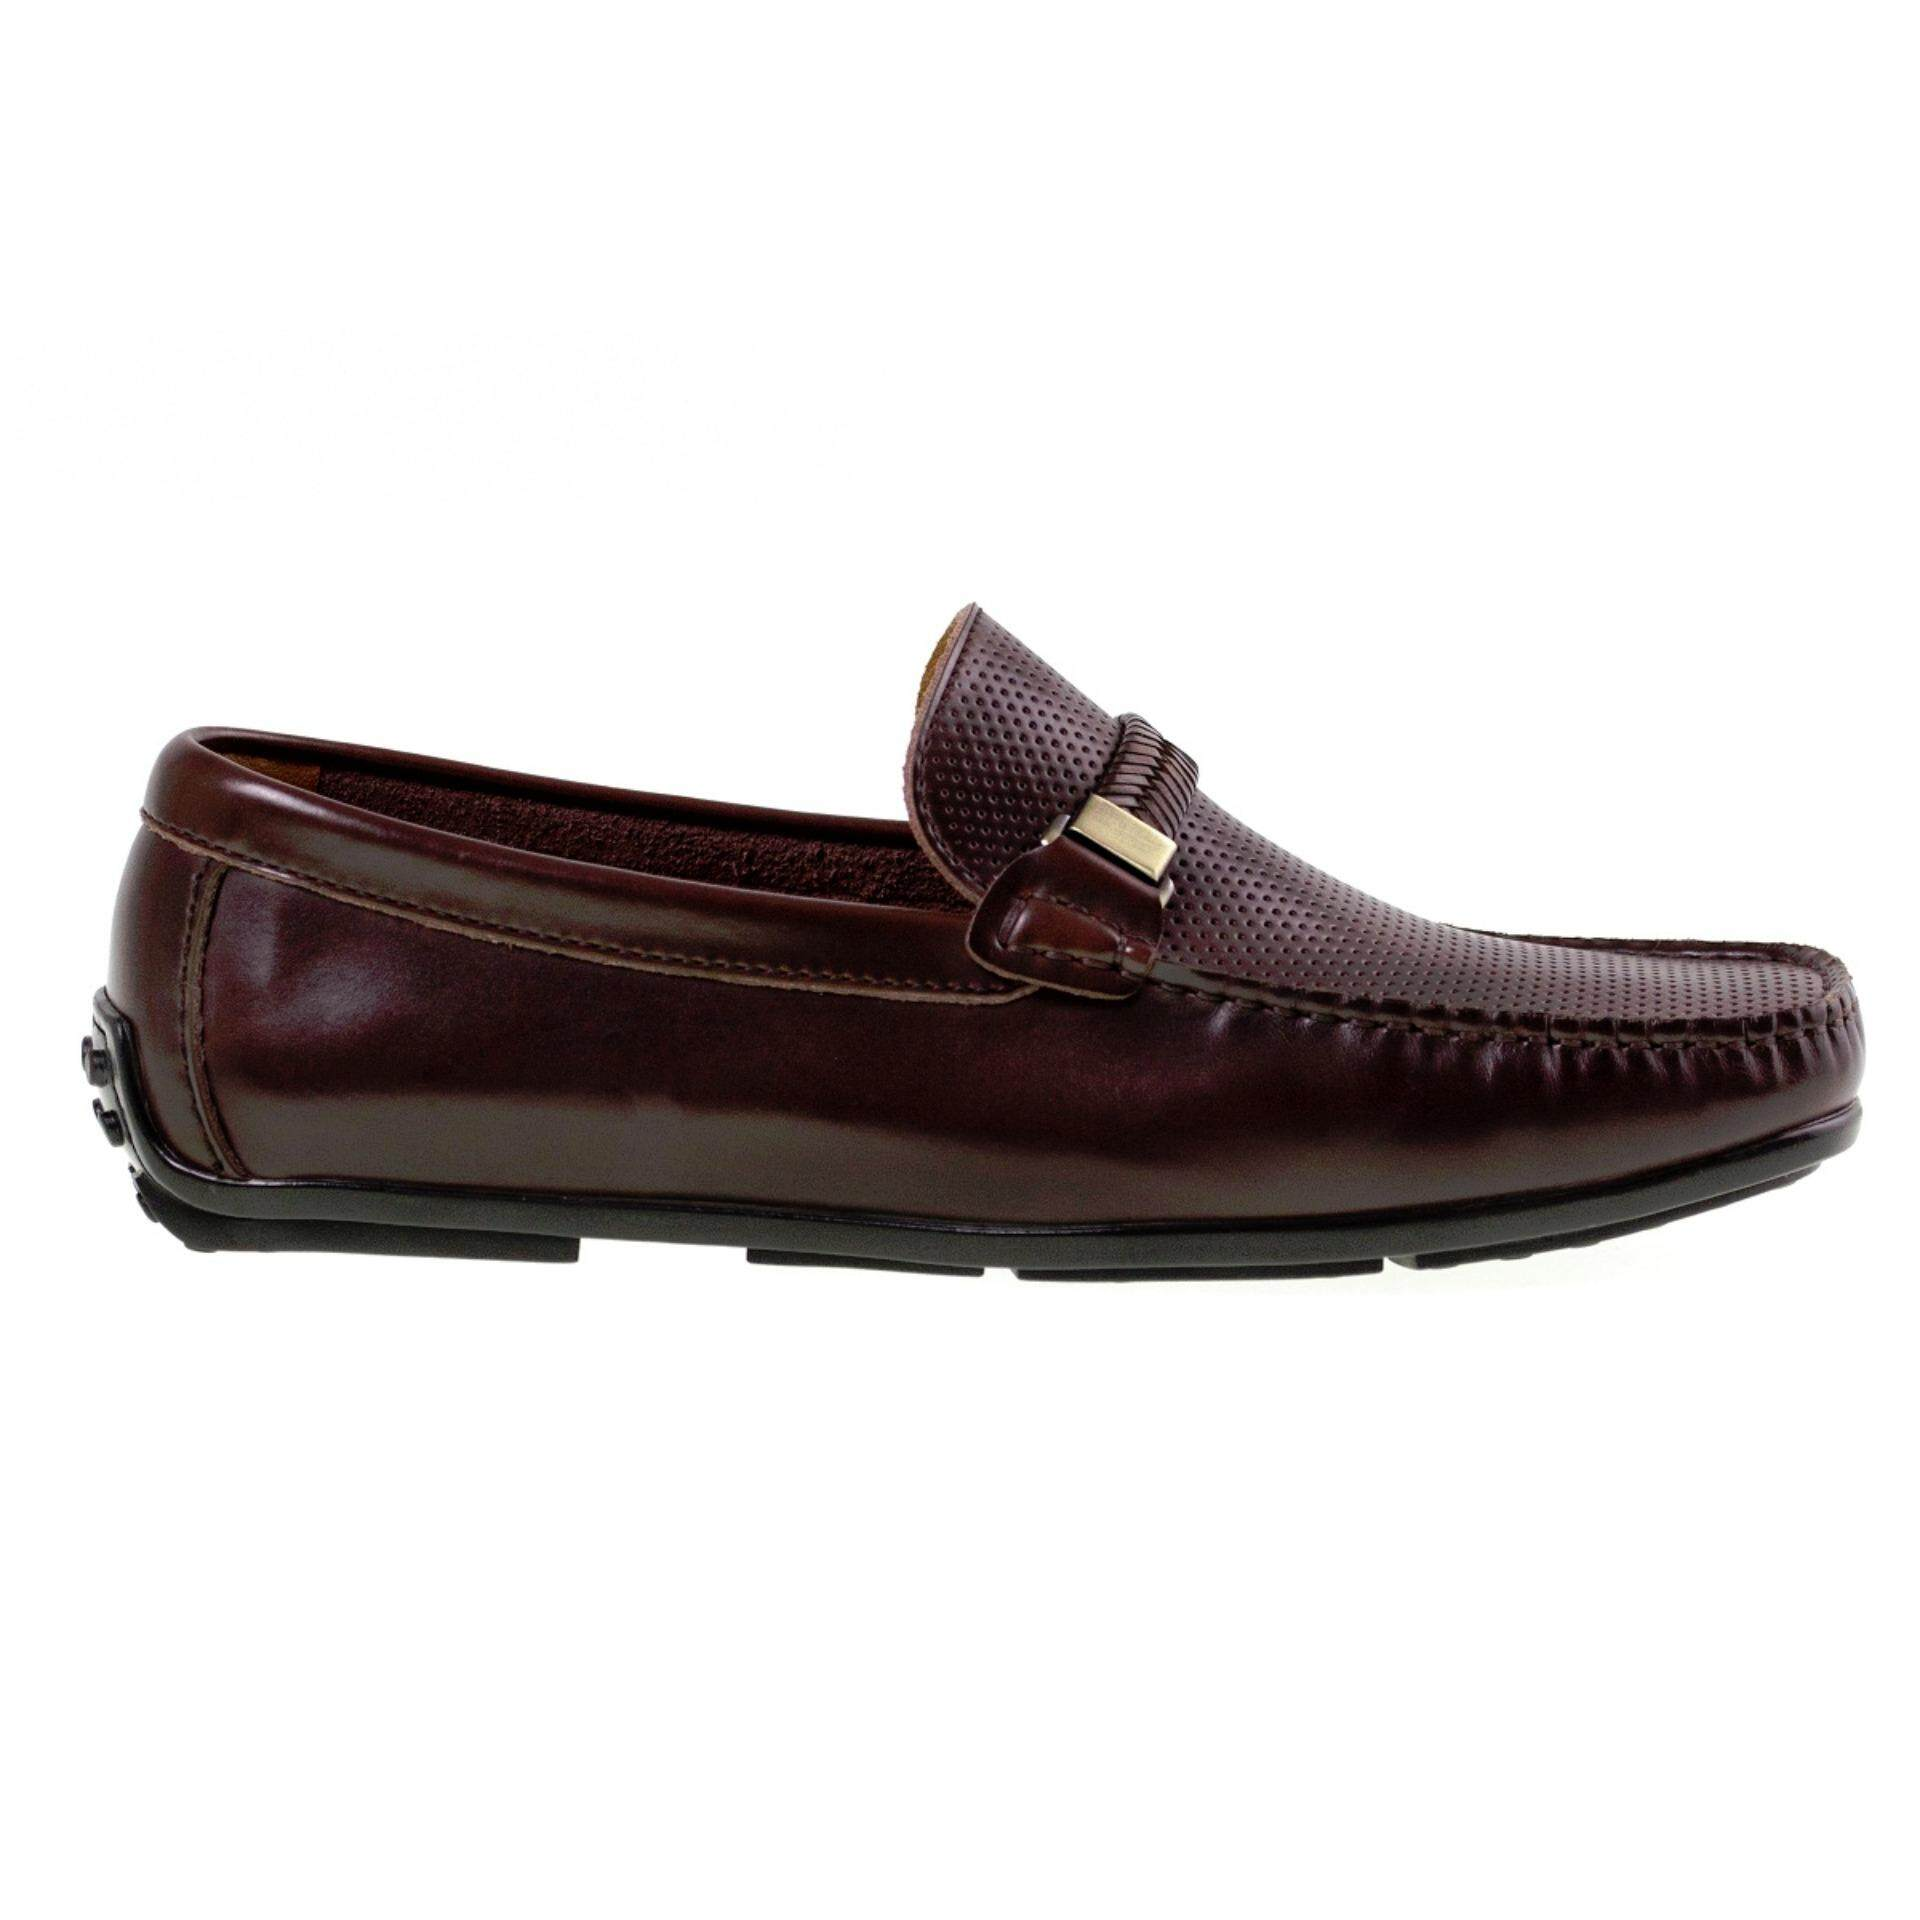 Tomaz C276 Perforated Braided Loafers (Coffee)